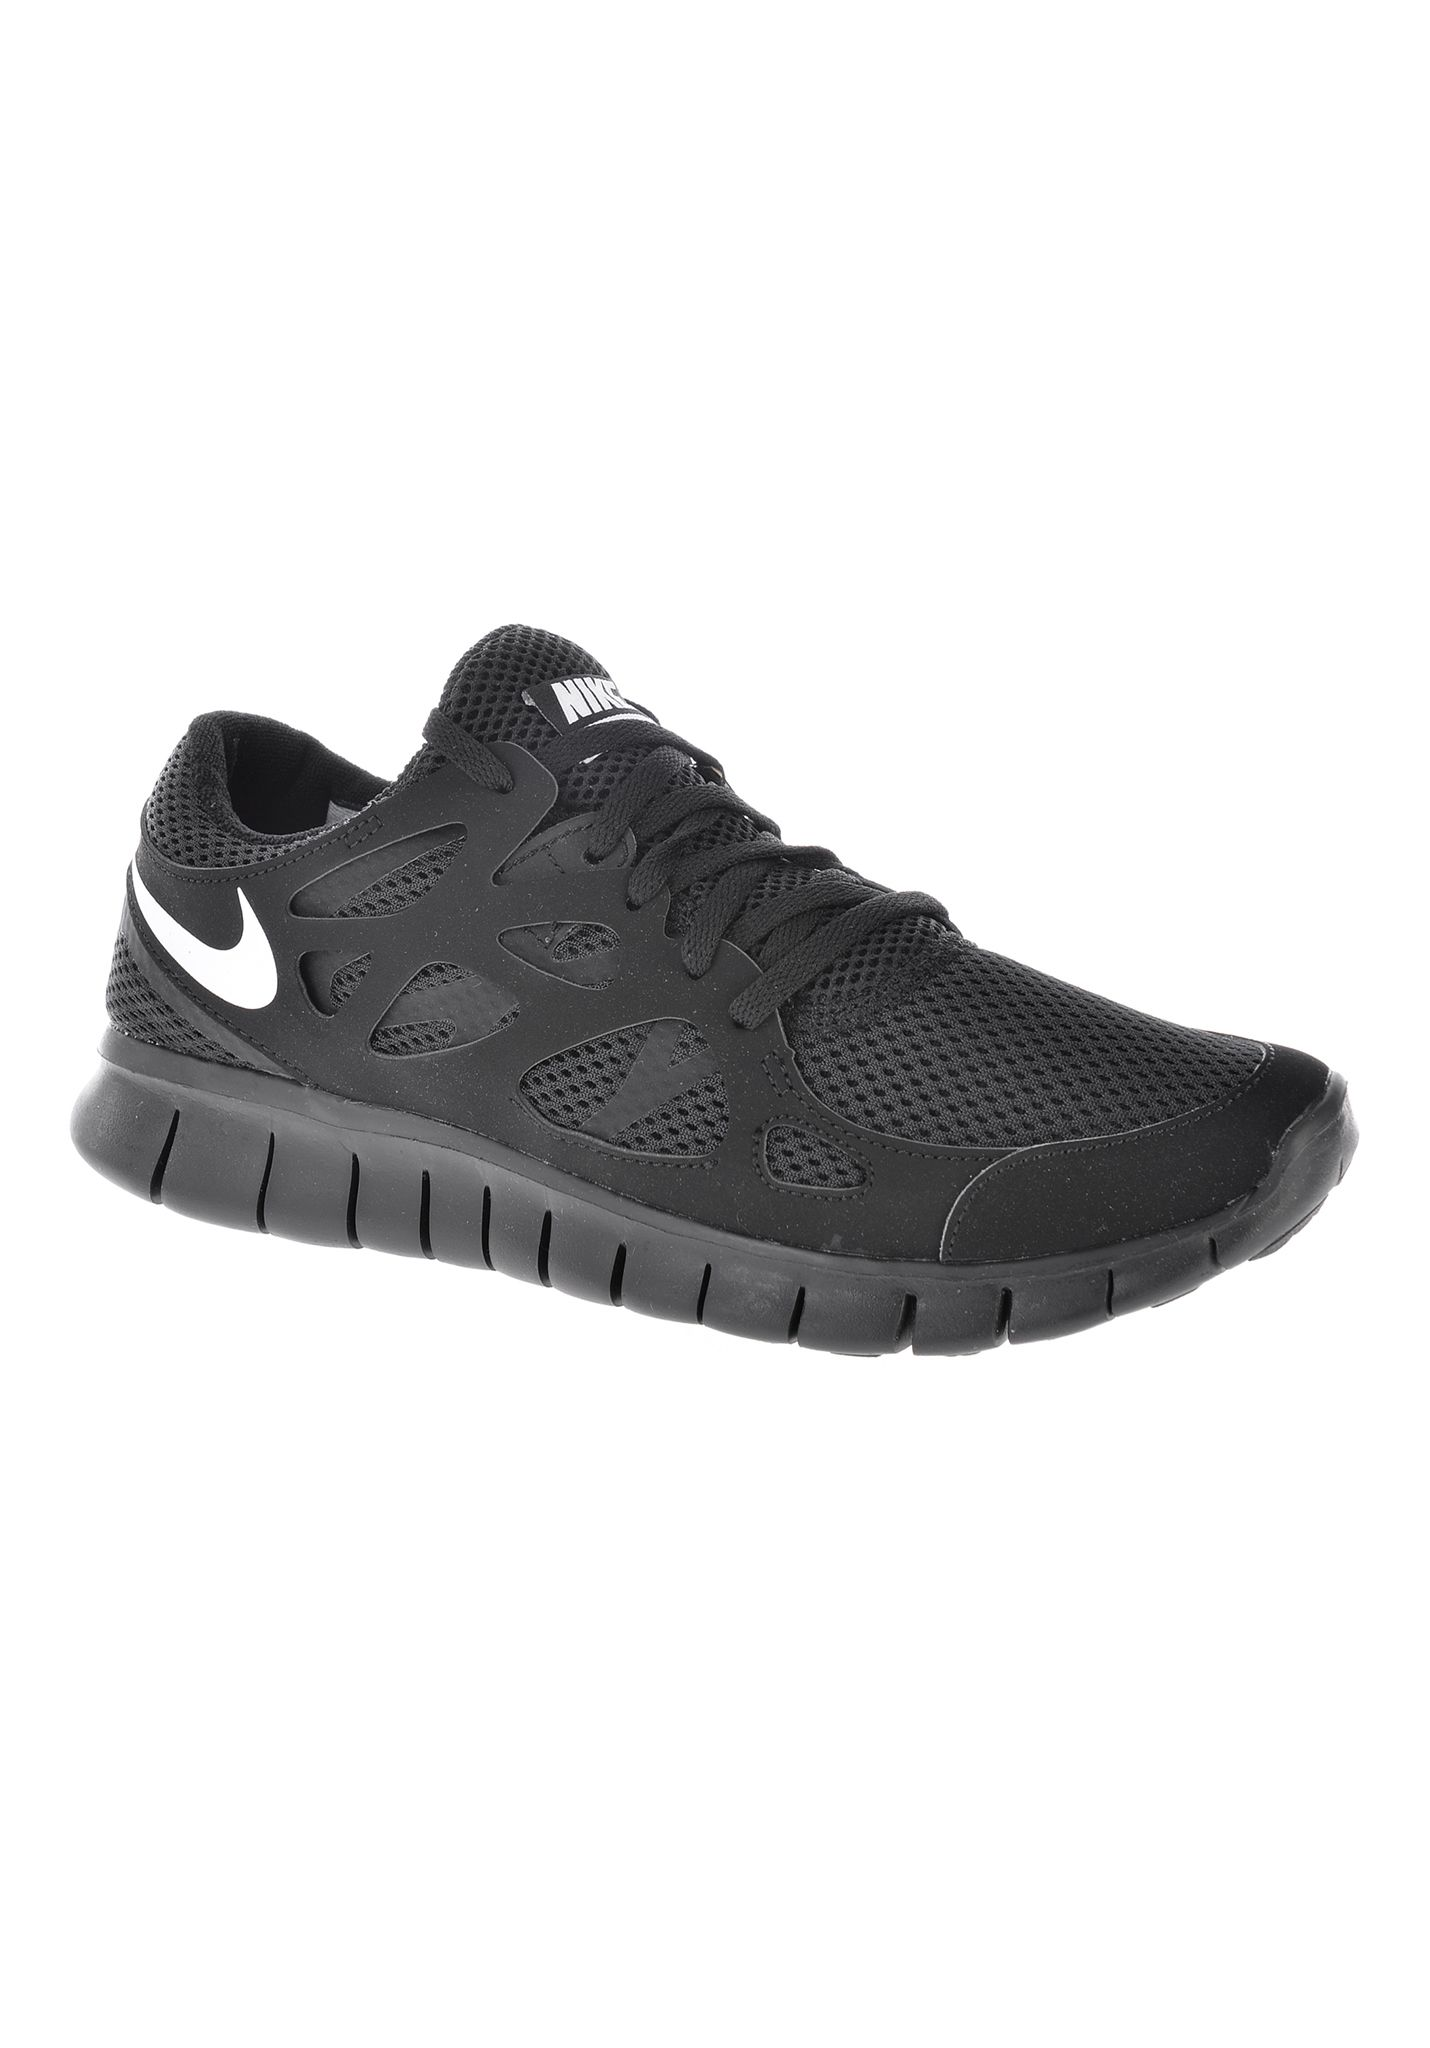 Cheap Nike Free RN Flyknit Men's Running Shoes Black/White